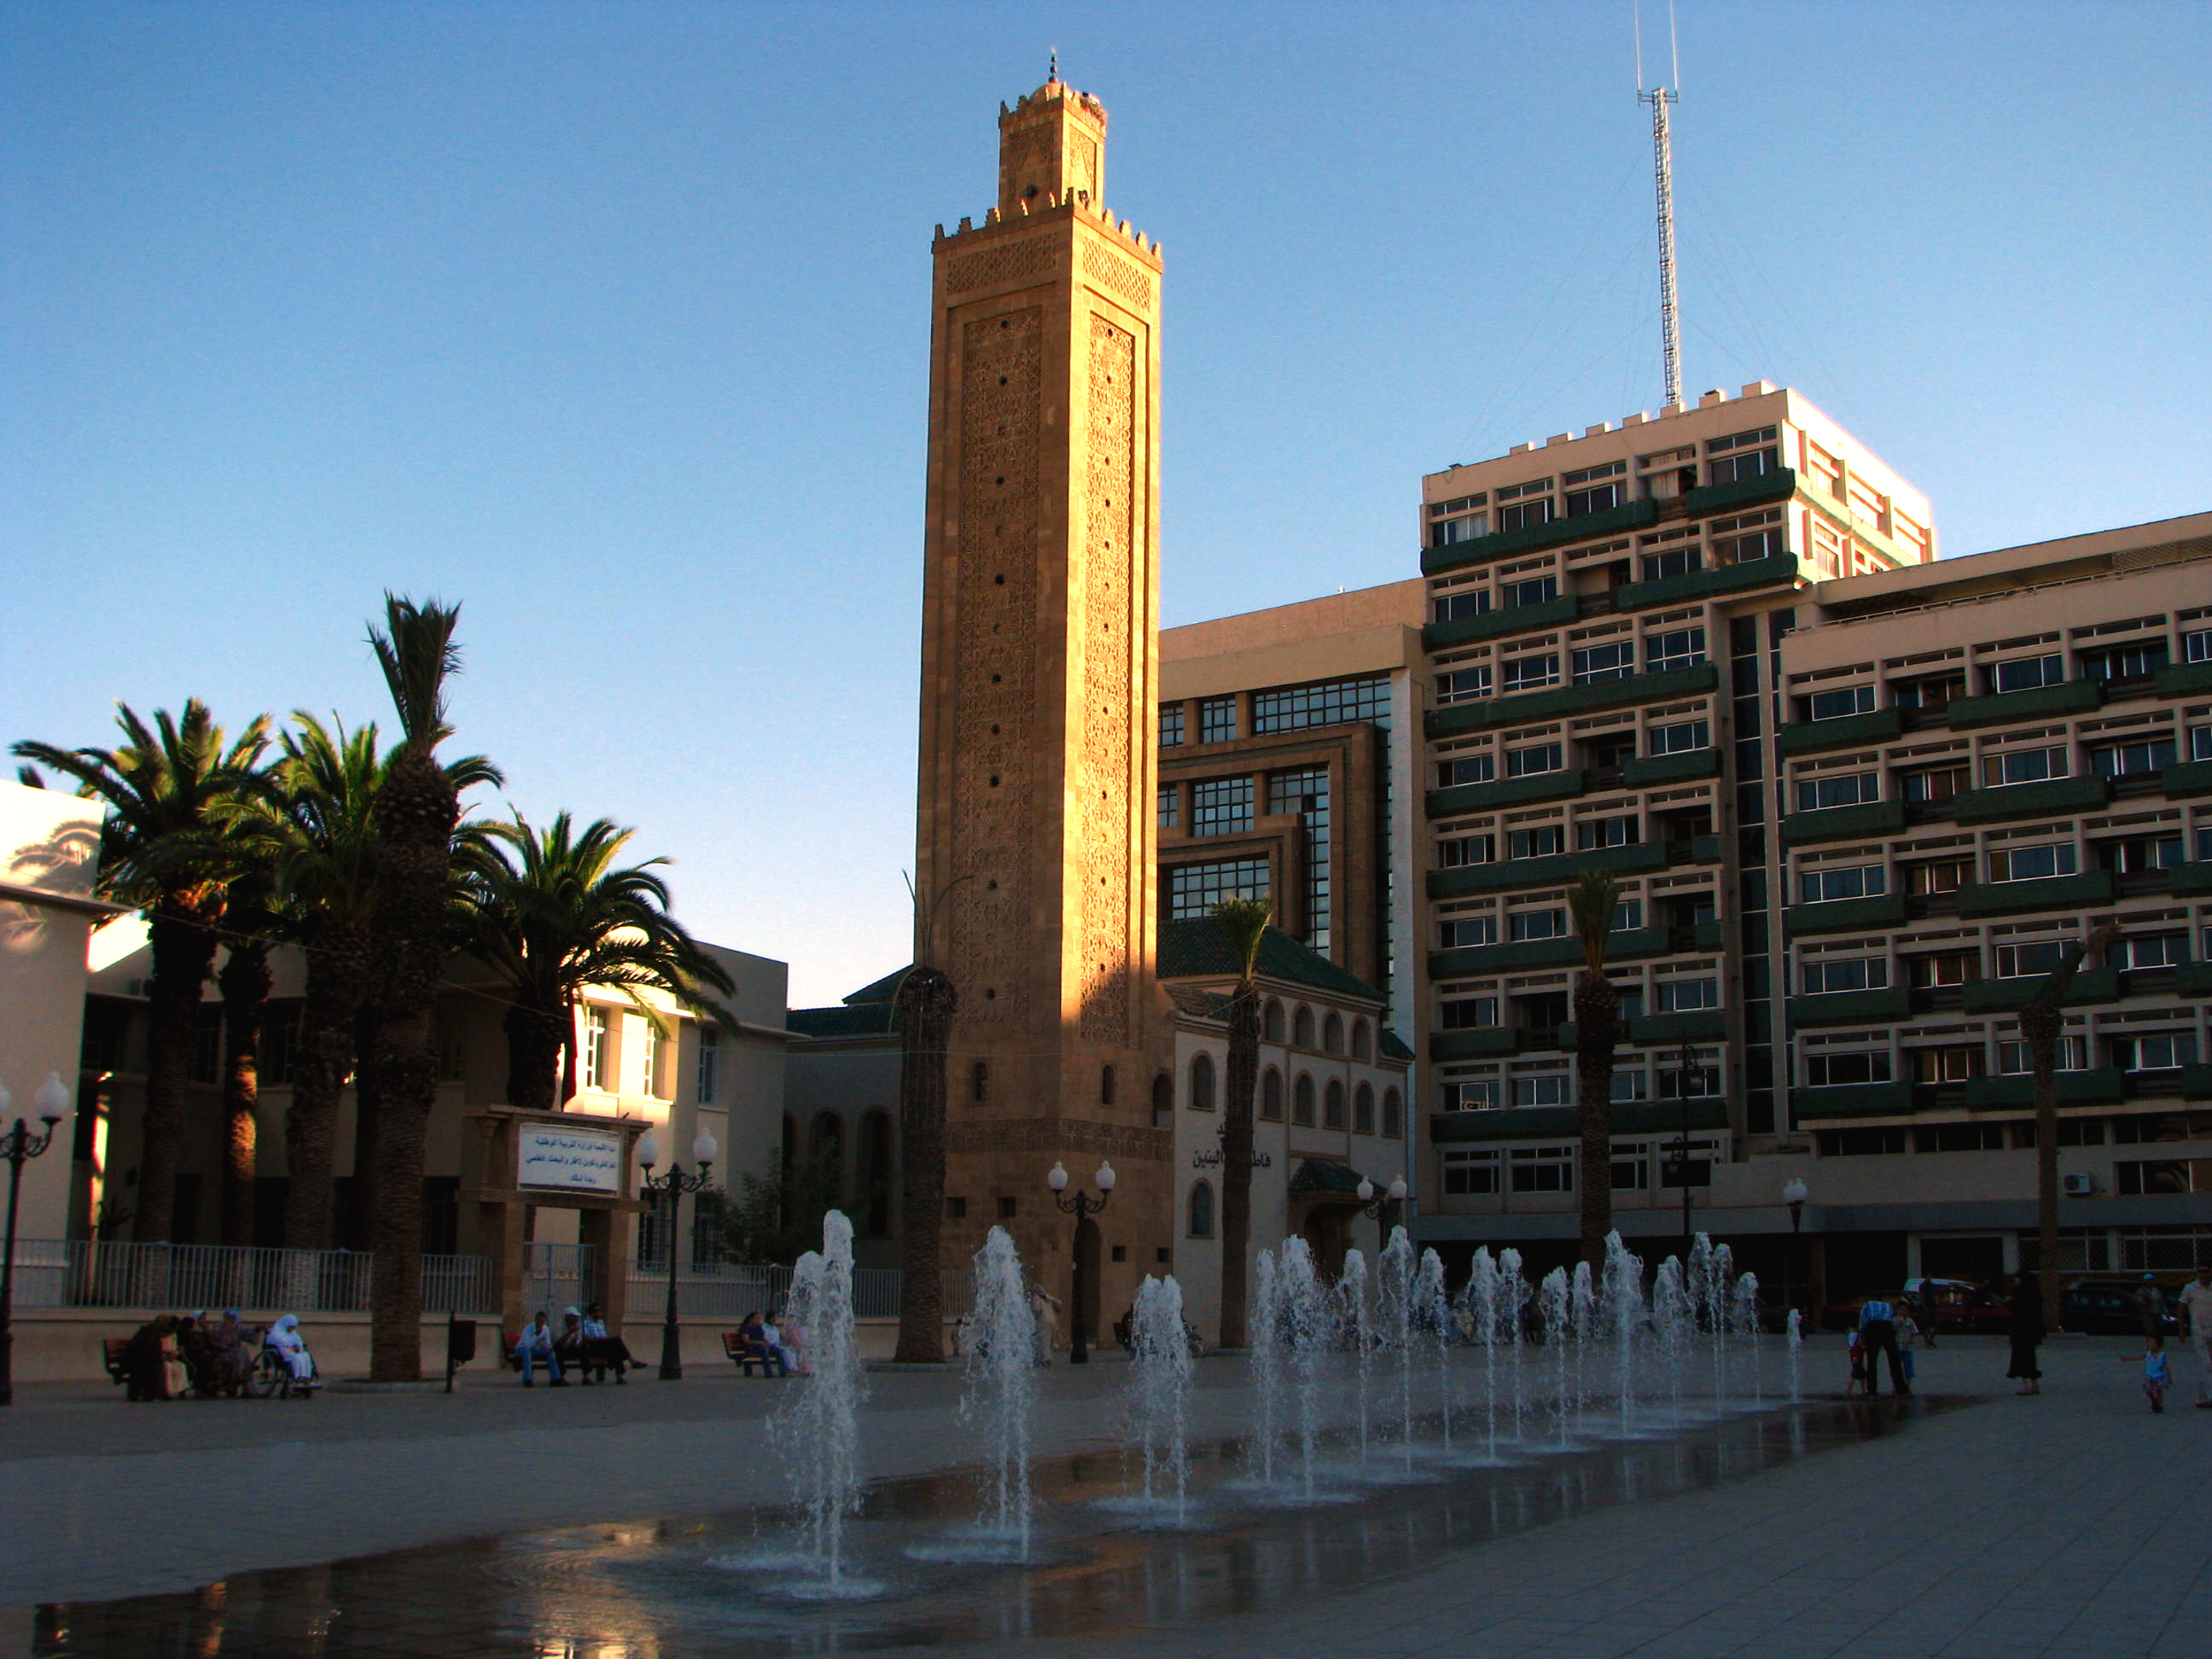 File:Oujda.Mosque 01.JPG - Wikipedia, the free encyclopedia